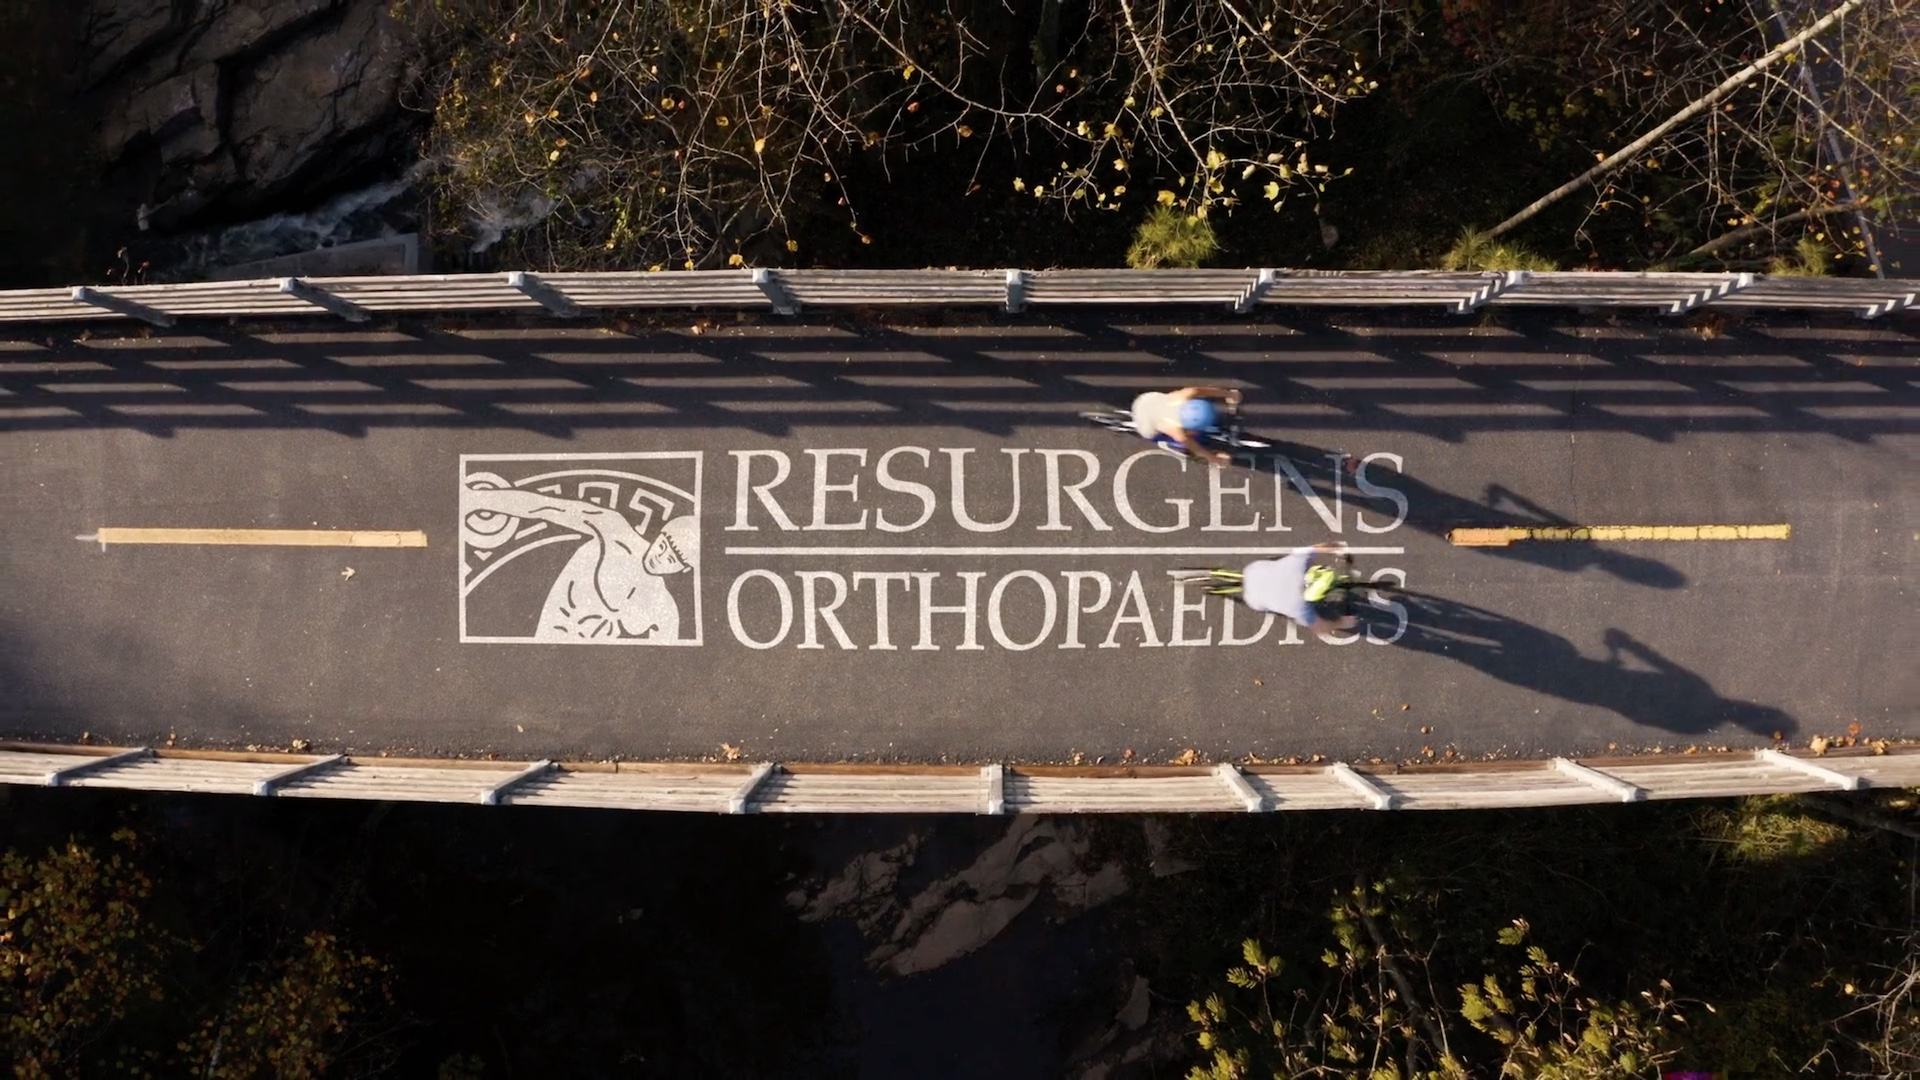 Two cyclists on the Silver Comet Trail pass over the words Resurgens Orthopaedics.